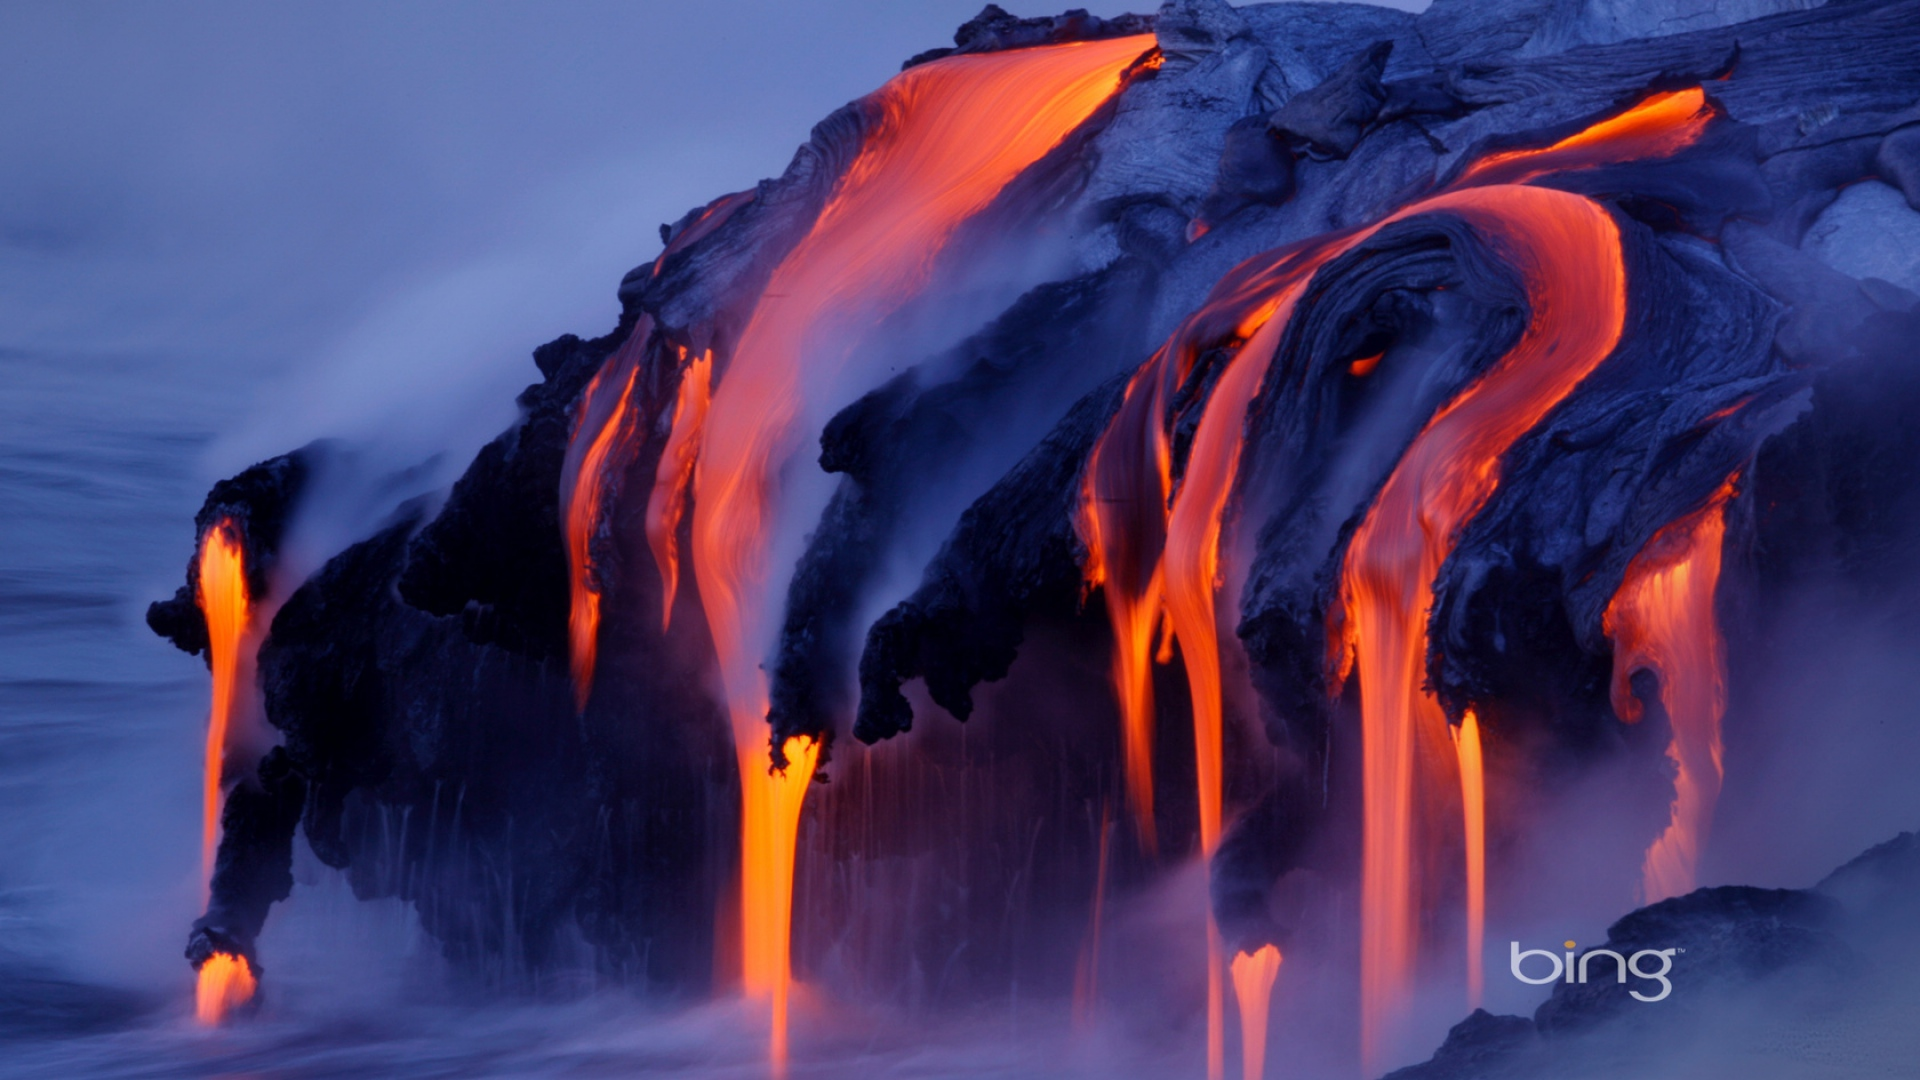 Download Wallpaper 1920x1080 streams, steam, lava, volcano, eruption Full HD 1080p HD Background